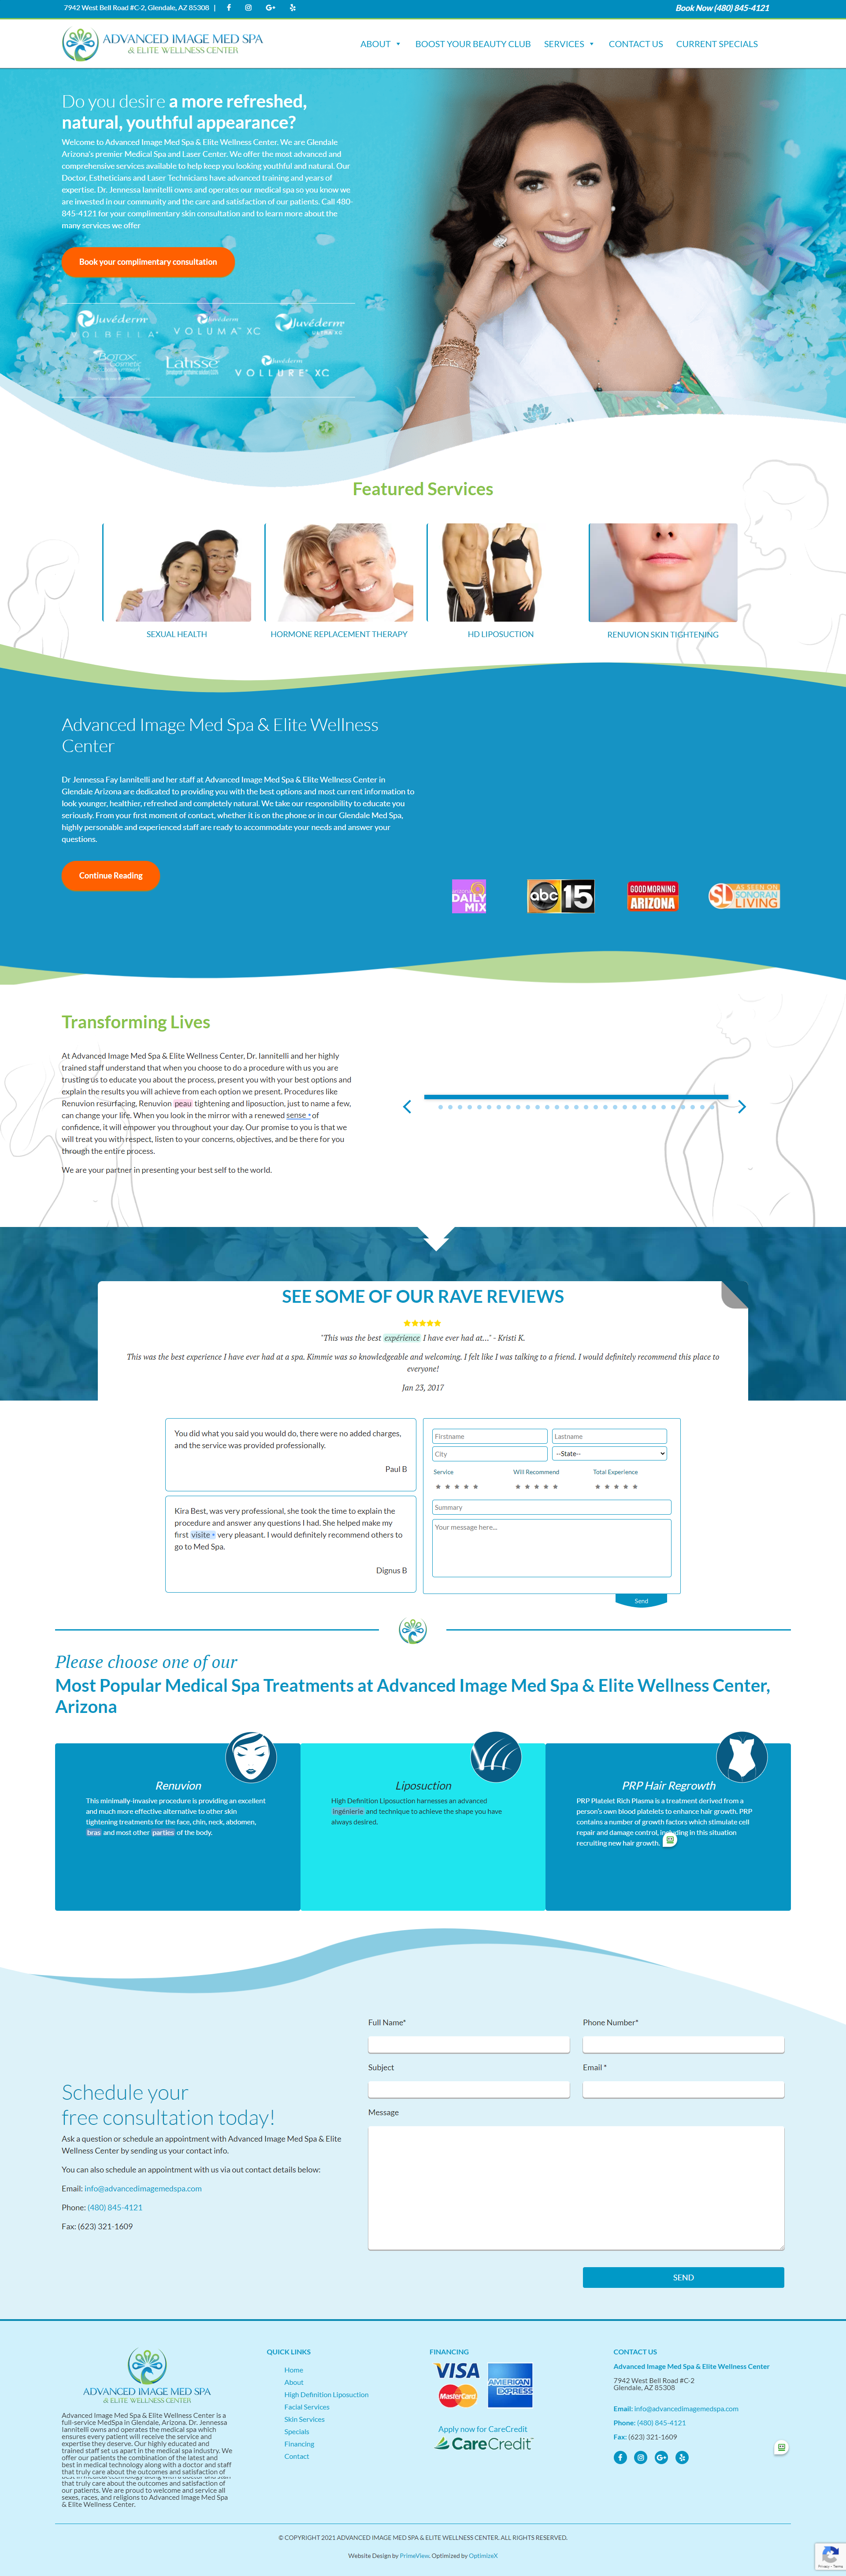 Advanced Image Med Spa Gets New Skin With Website Redesign